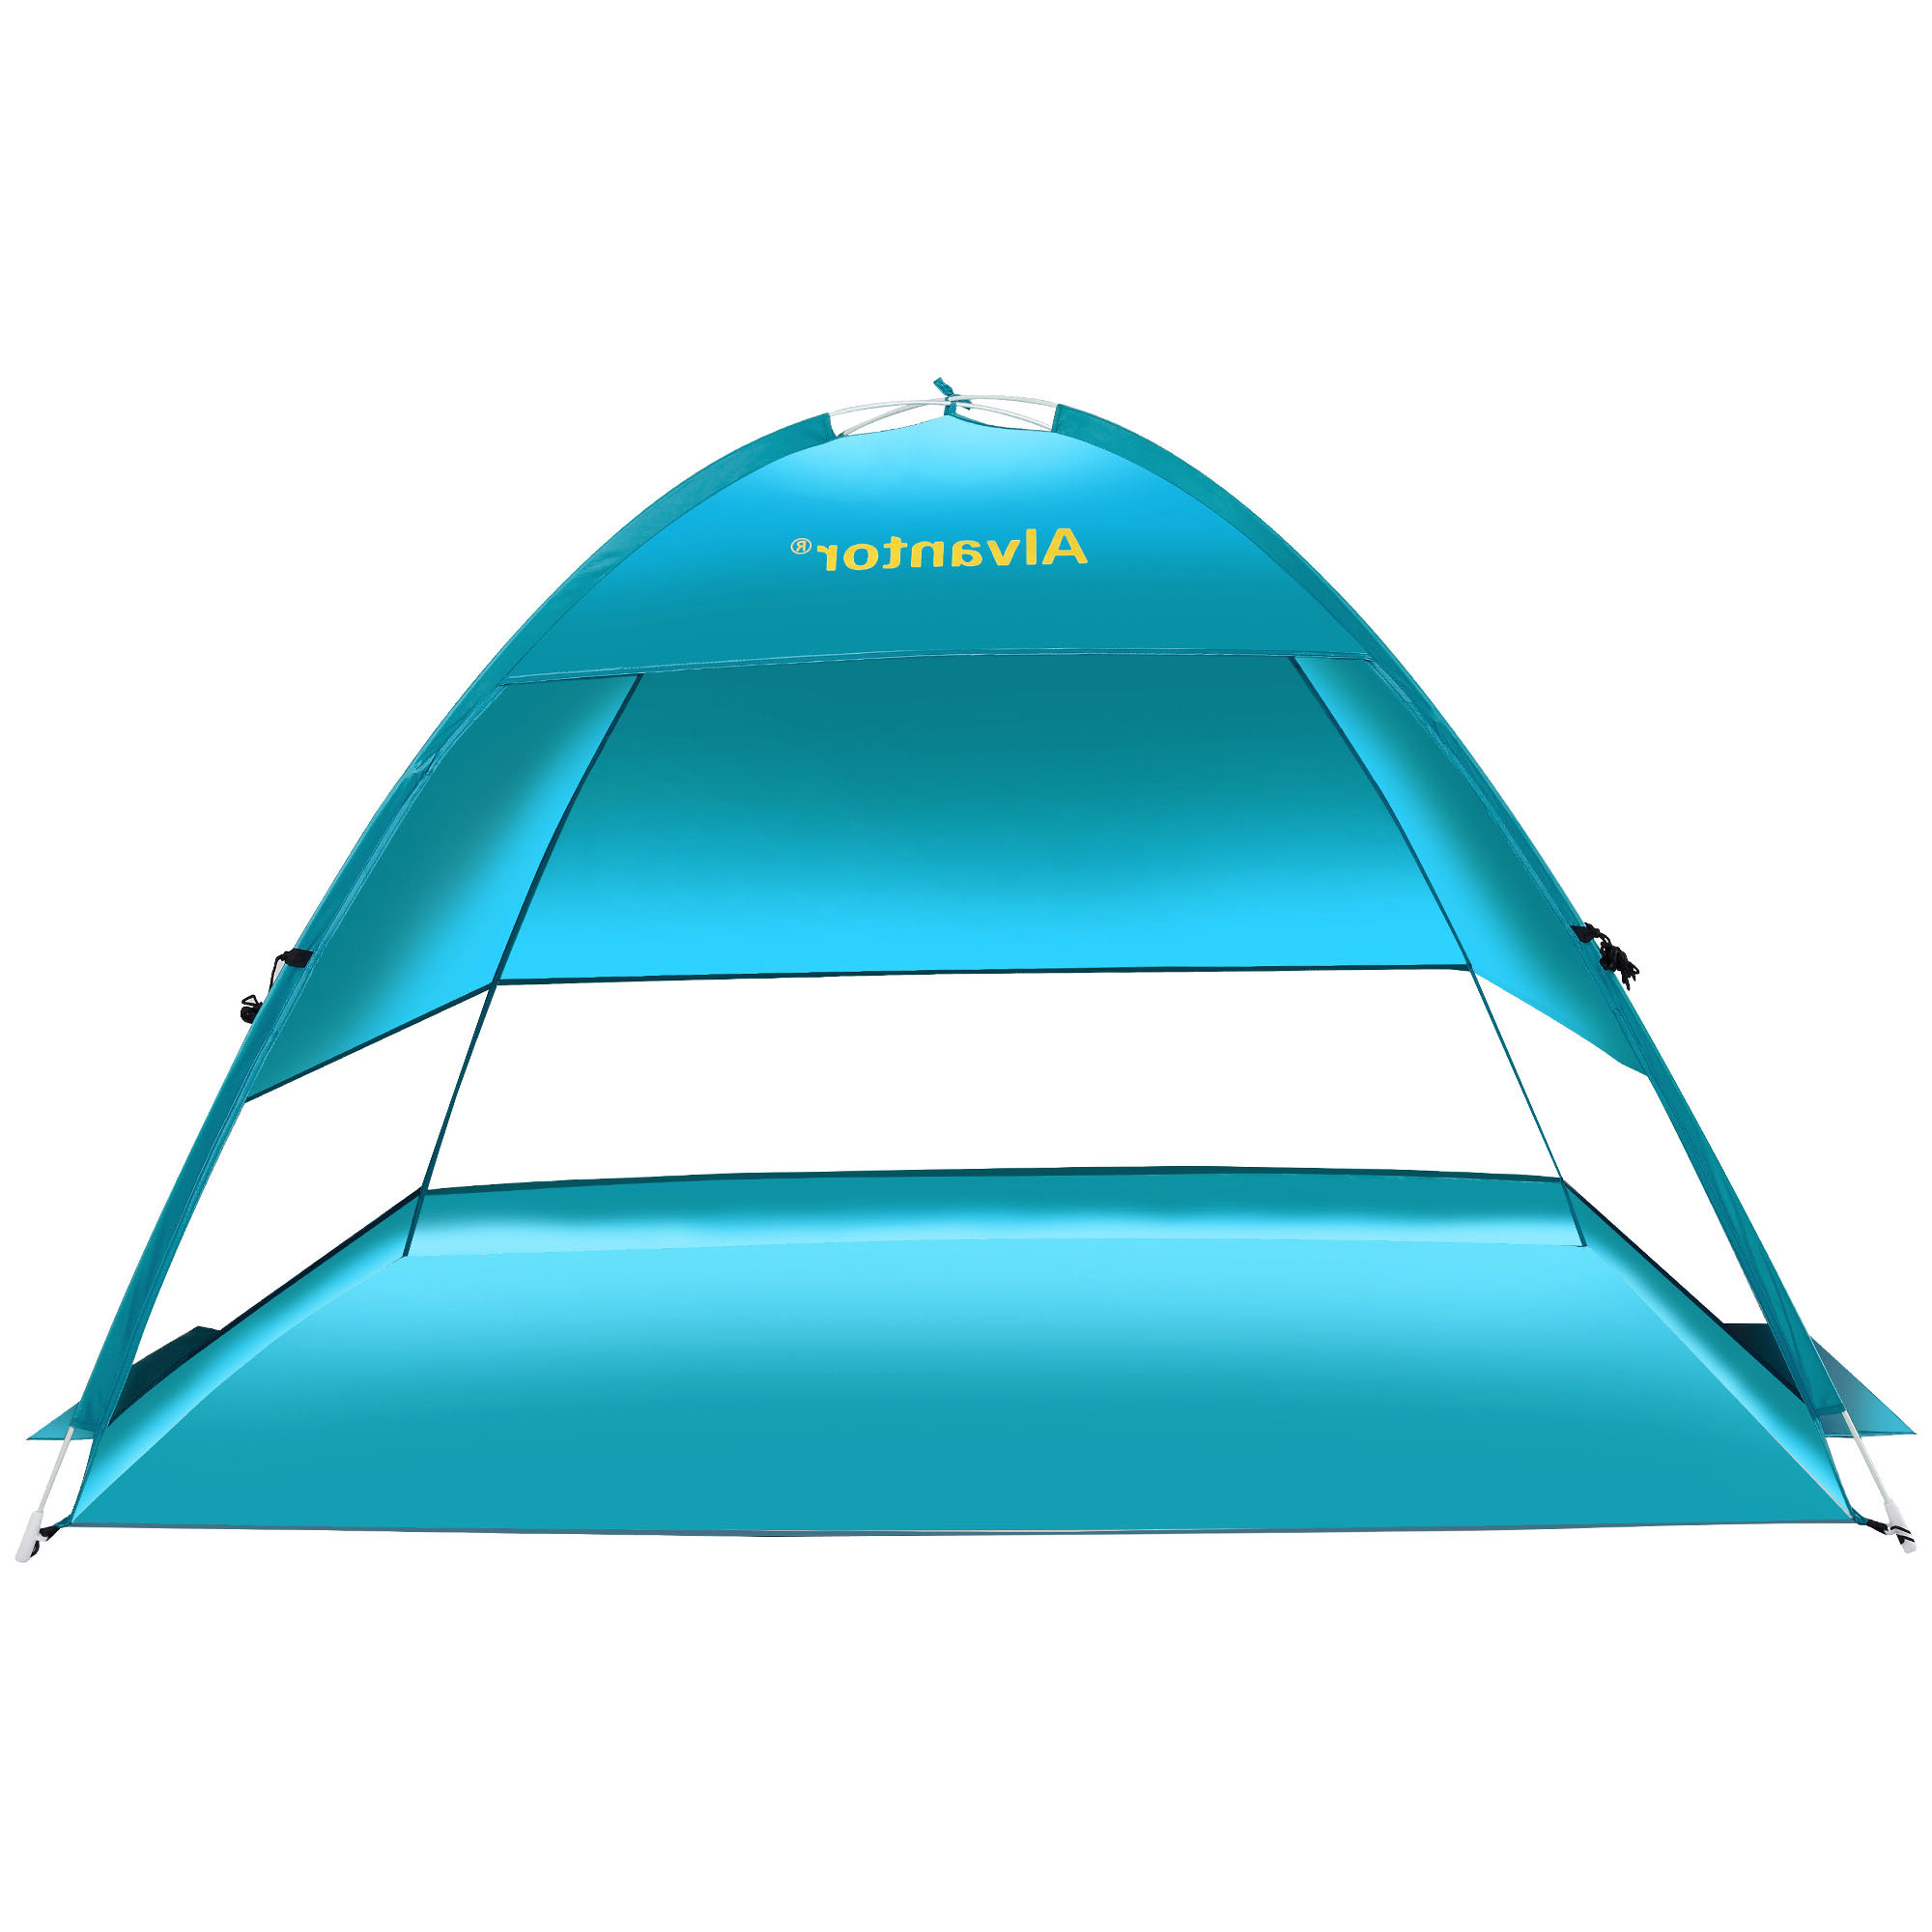 Well Known Coolhut Plus Beach Umbrella Sun Shelter Cabana Pop Up Sun Shade Portable Light Weight 3 Person Tent For Sun Shelter Beach Umbrellas (View 20 of 20)